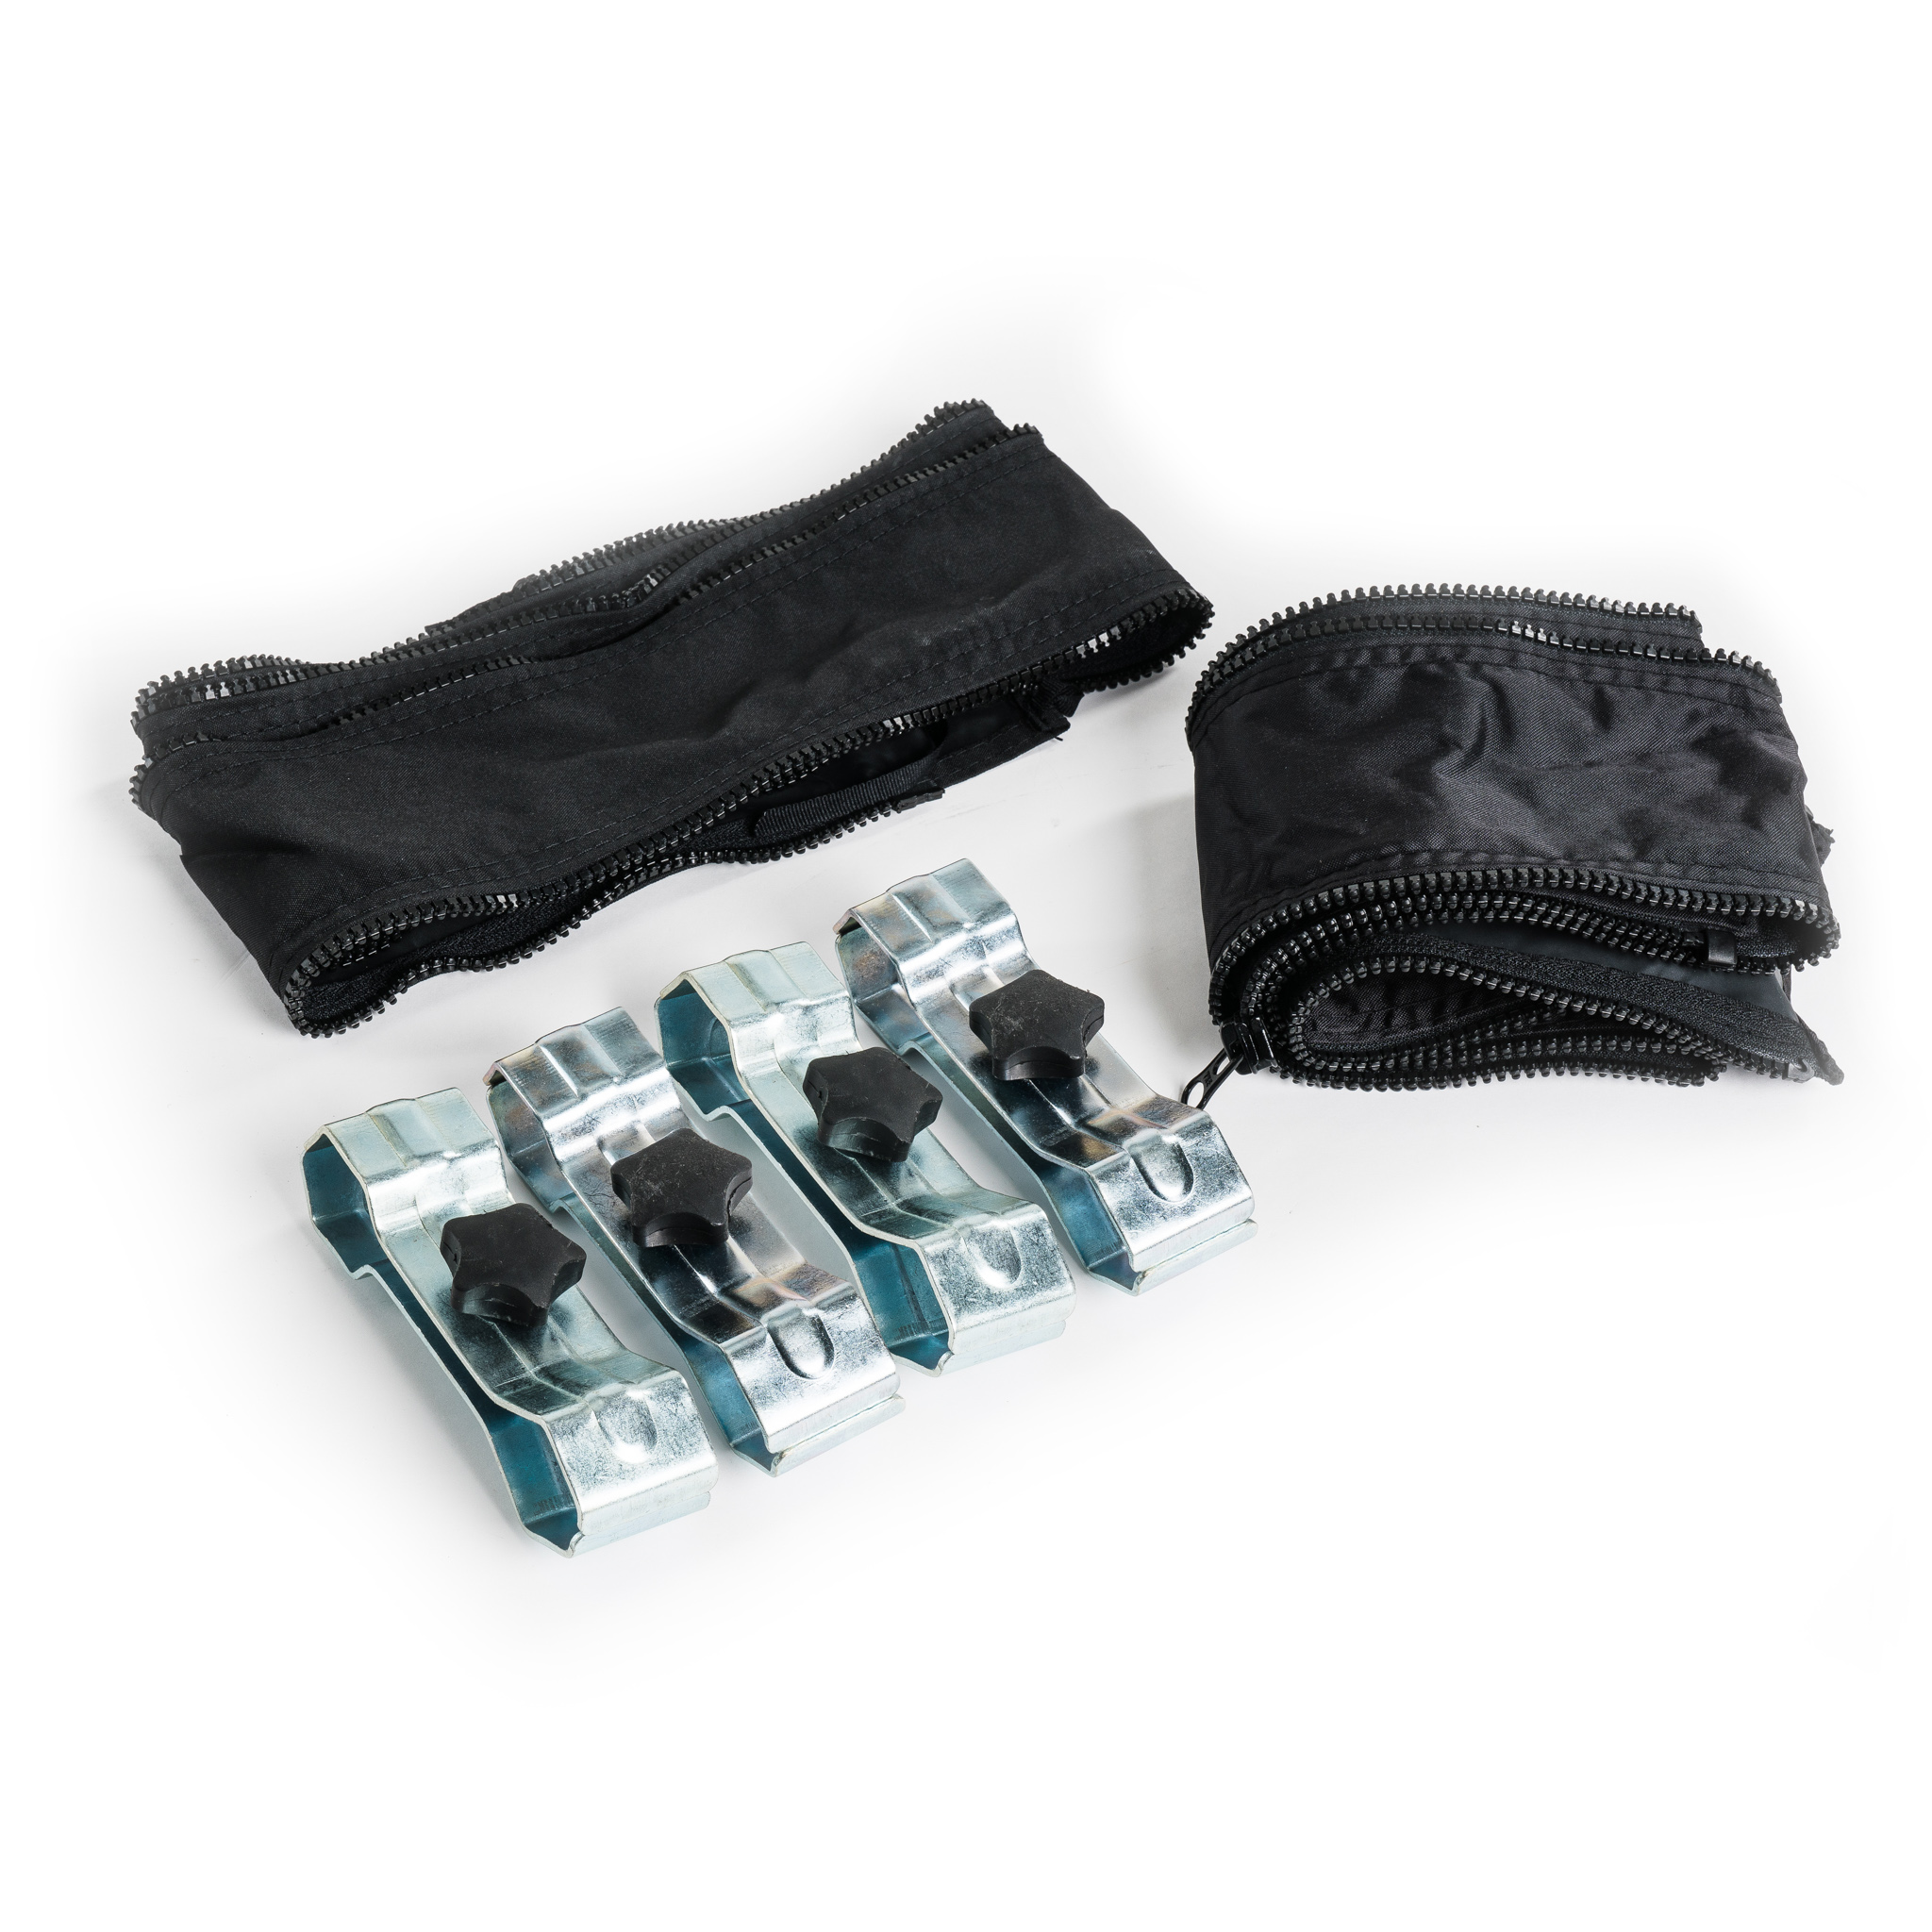 Canopro Lite Connecting Kit